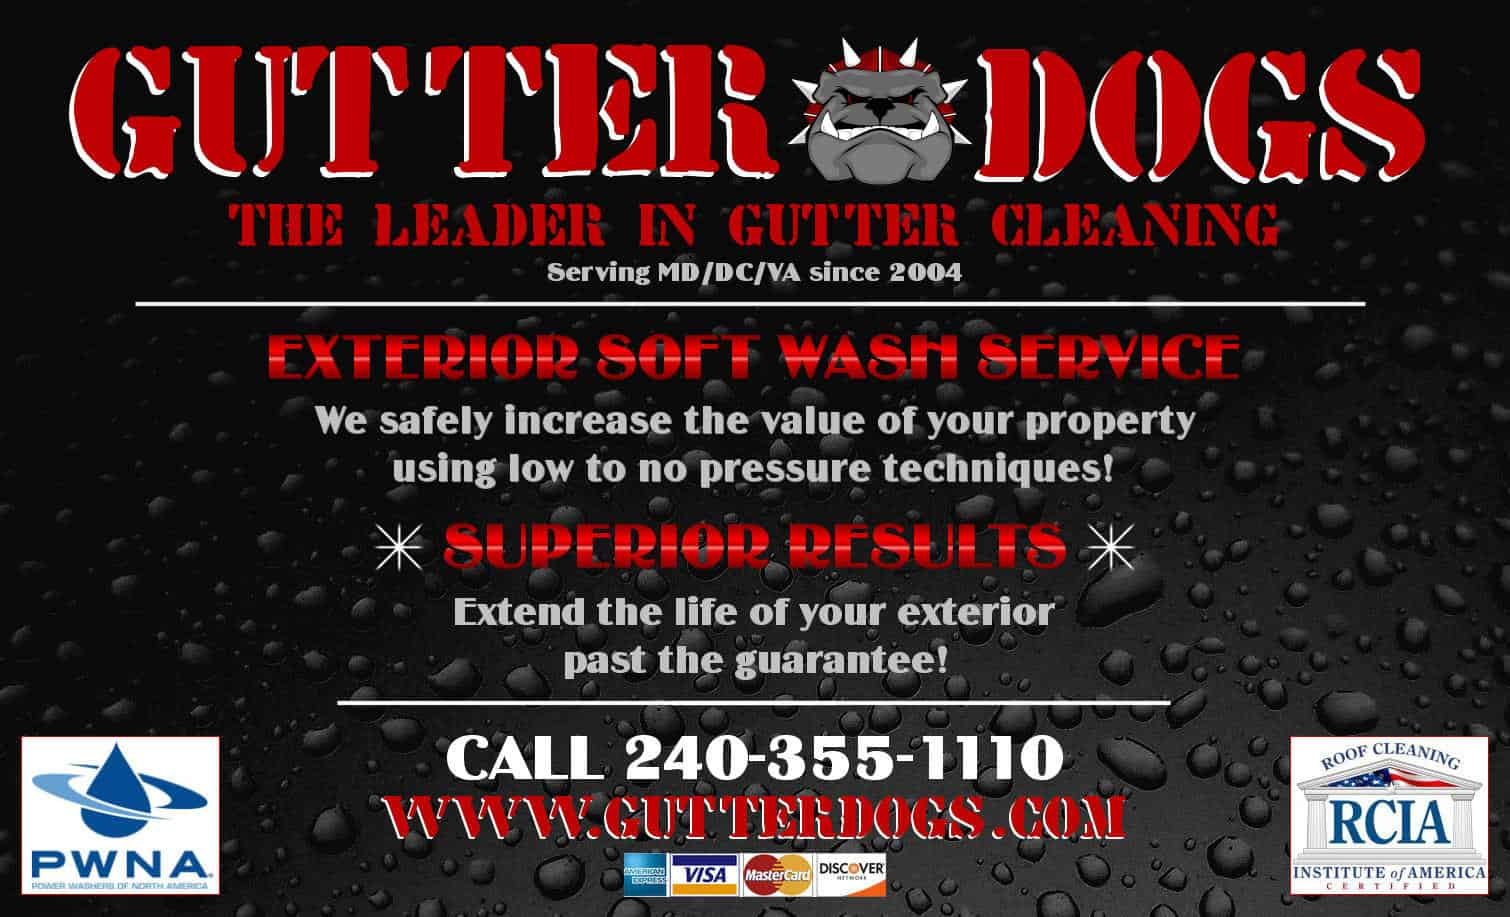 Dryer vent cleaning in pg county maryland gutterdogs our blog magicingreecefo Choice Image